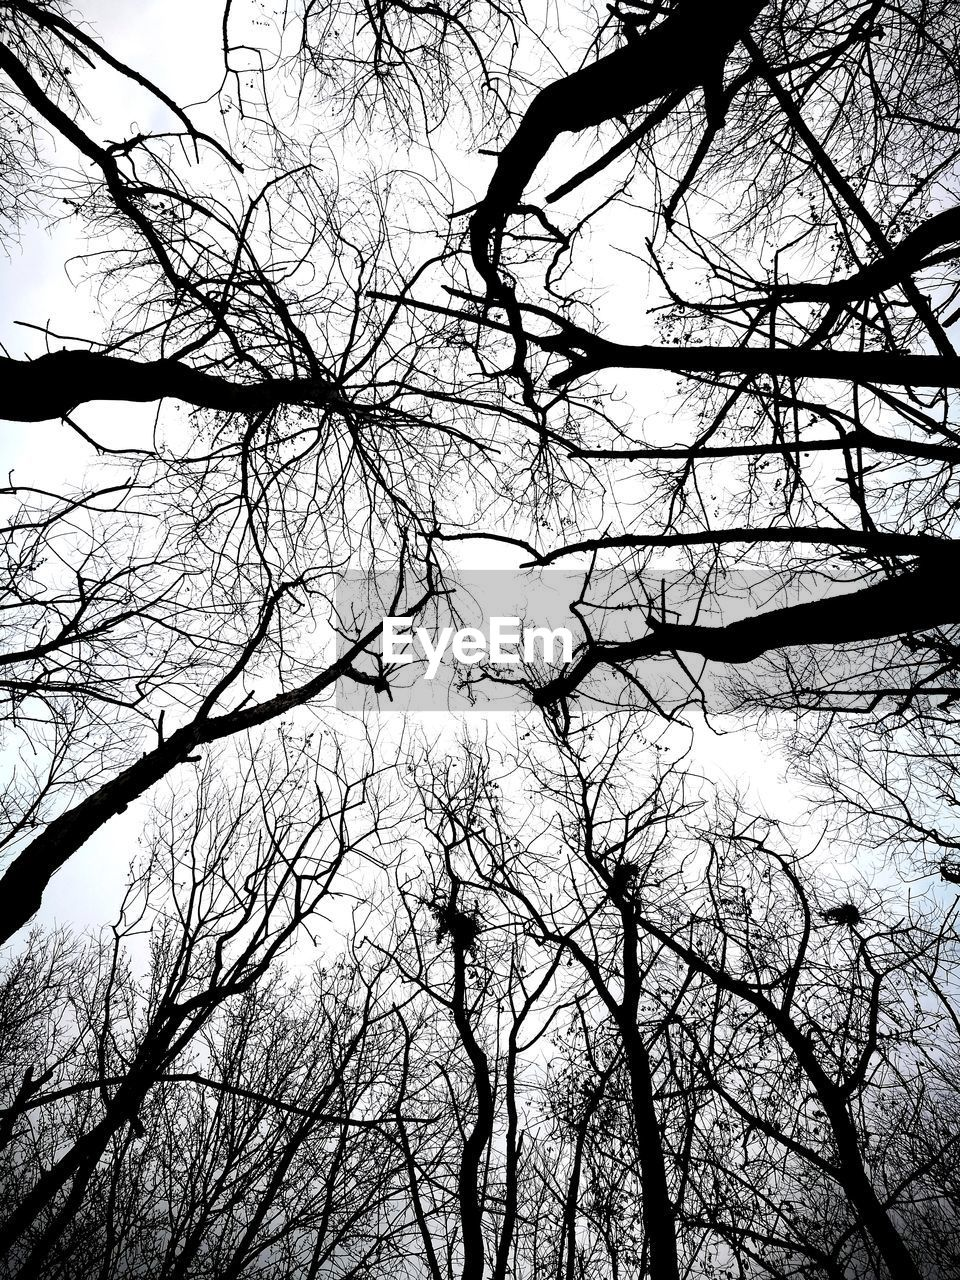 tree, branch, bare tree, plant, low angle view, sky, silhouette, tranquility, no people, nature, beauty in nature, forest, outdoors, scenics - nature, day, tranquil scene, trunk, tree trunk, tree canopy, growth, directly below